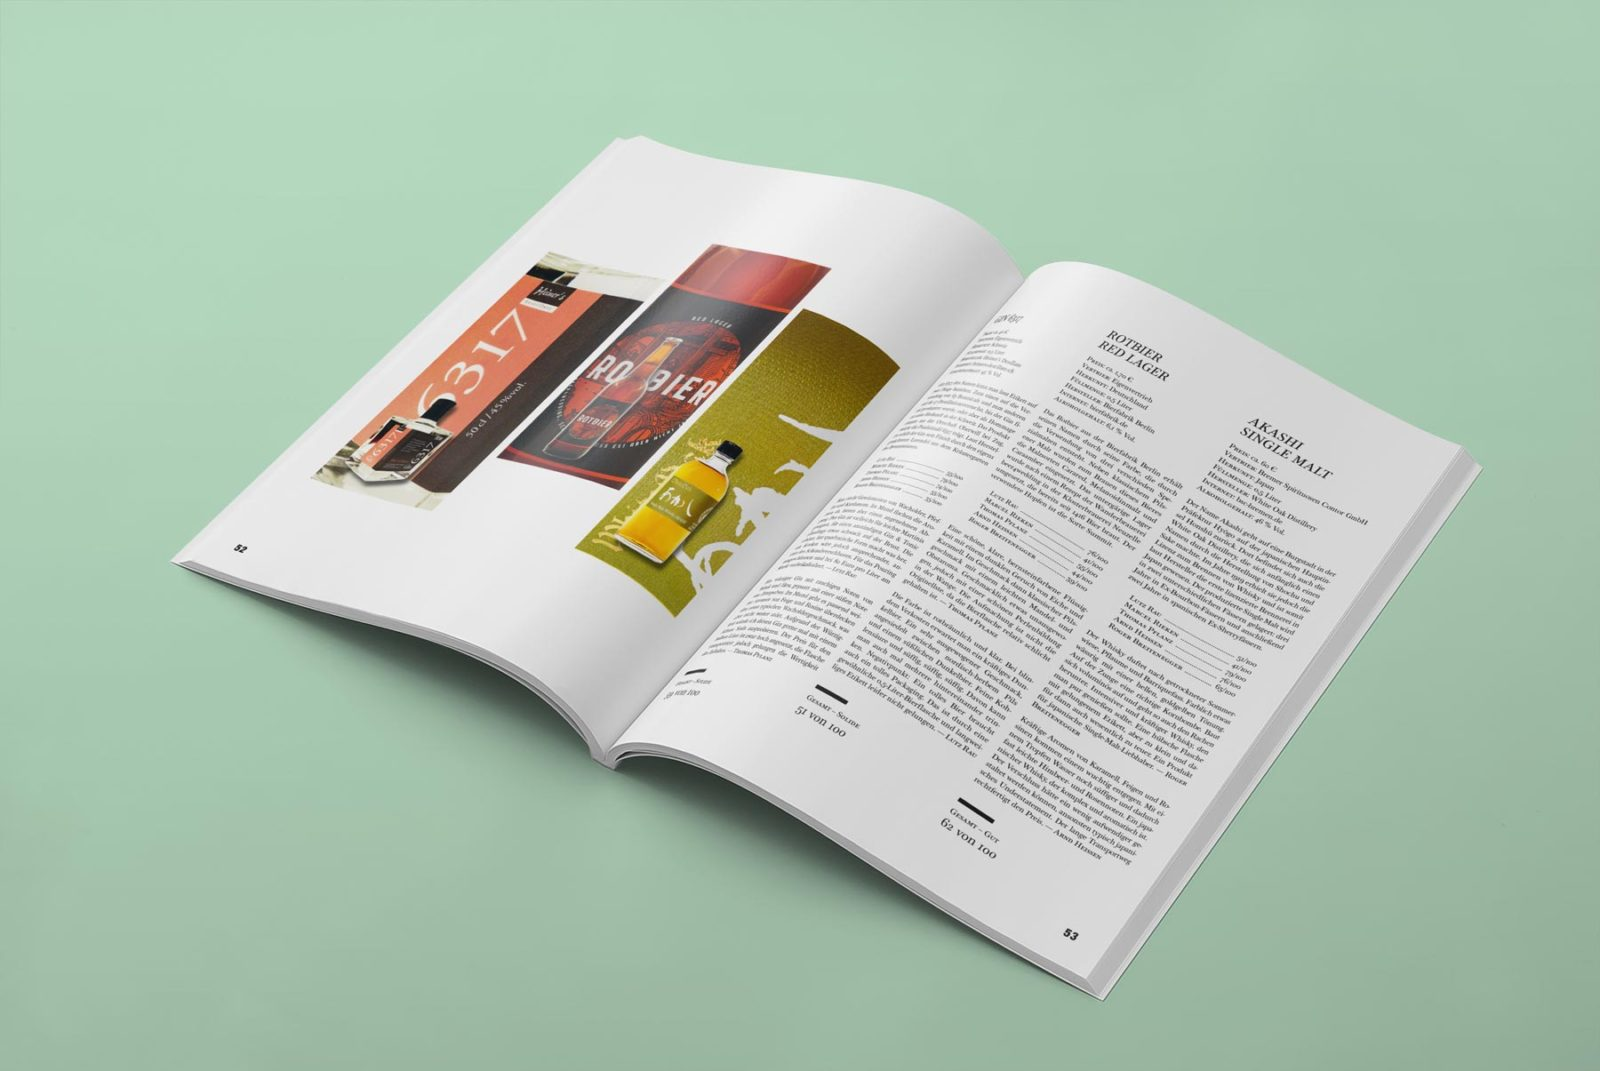 Editienne Grafikdesign - Kommunikationsdesign Berlin- Editorial Design Mixology Magazine 32